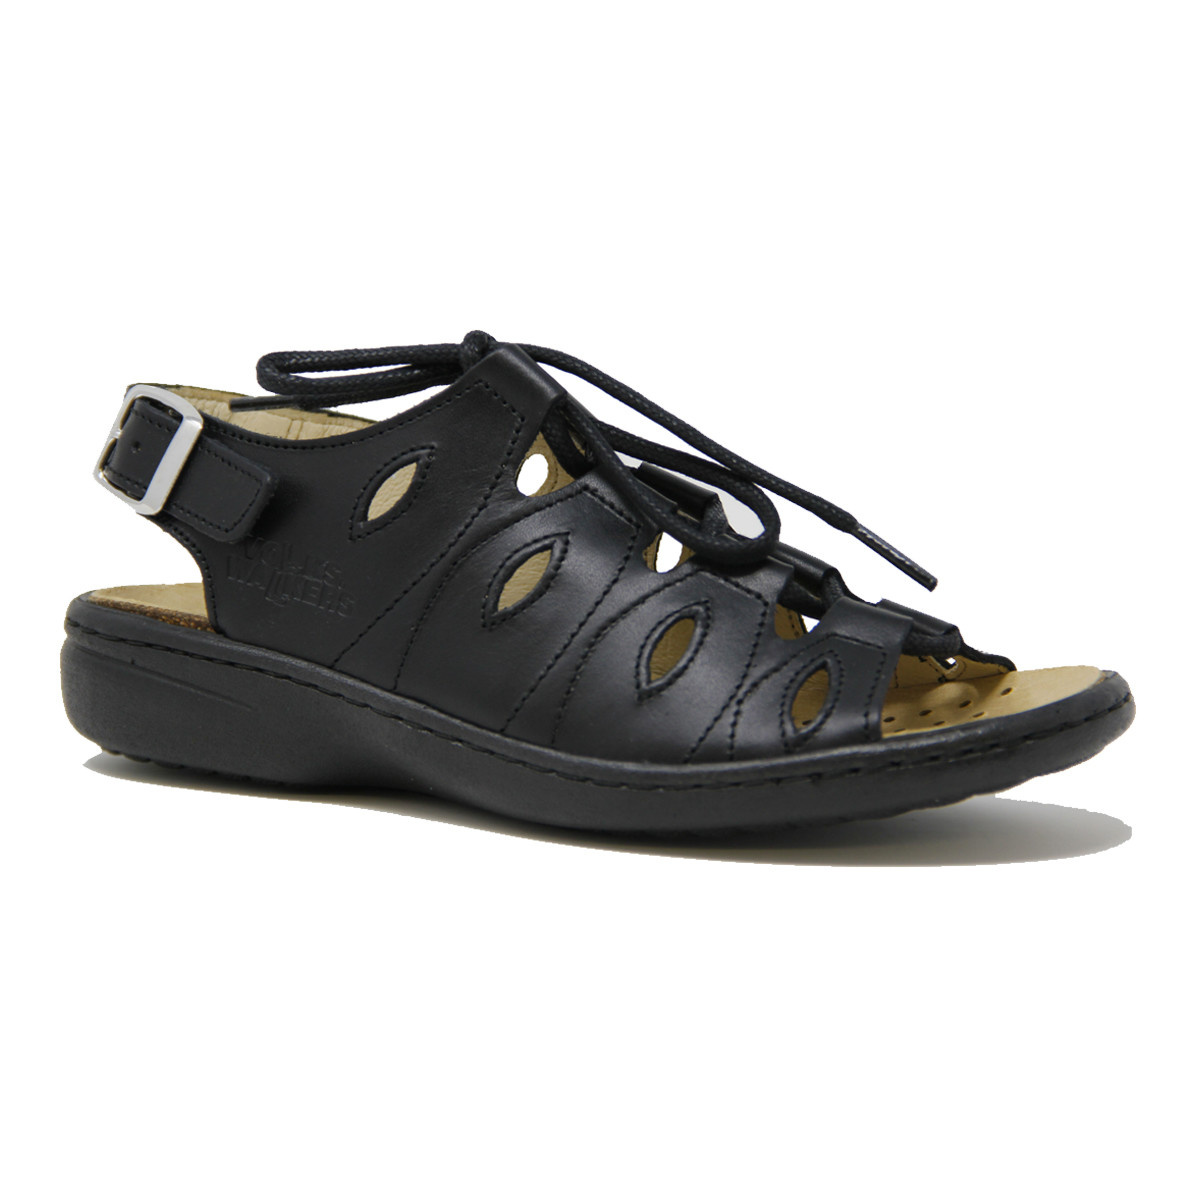 Volks Walker Volks Walkers 04970 Leather Sandal Black